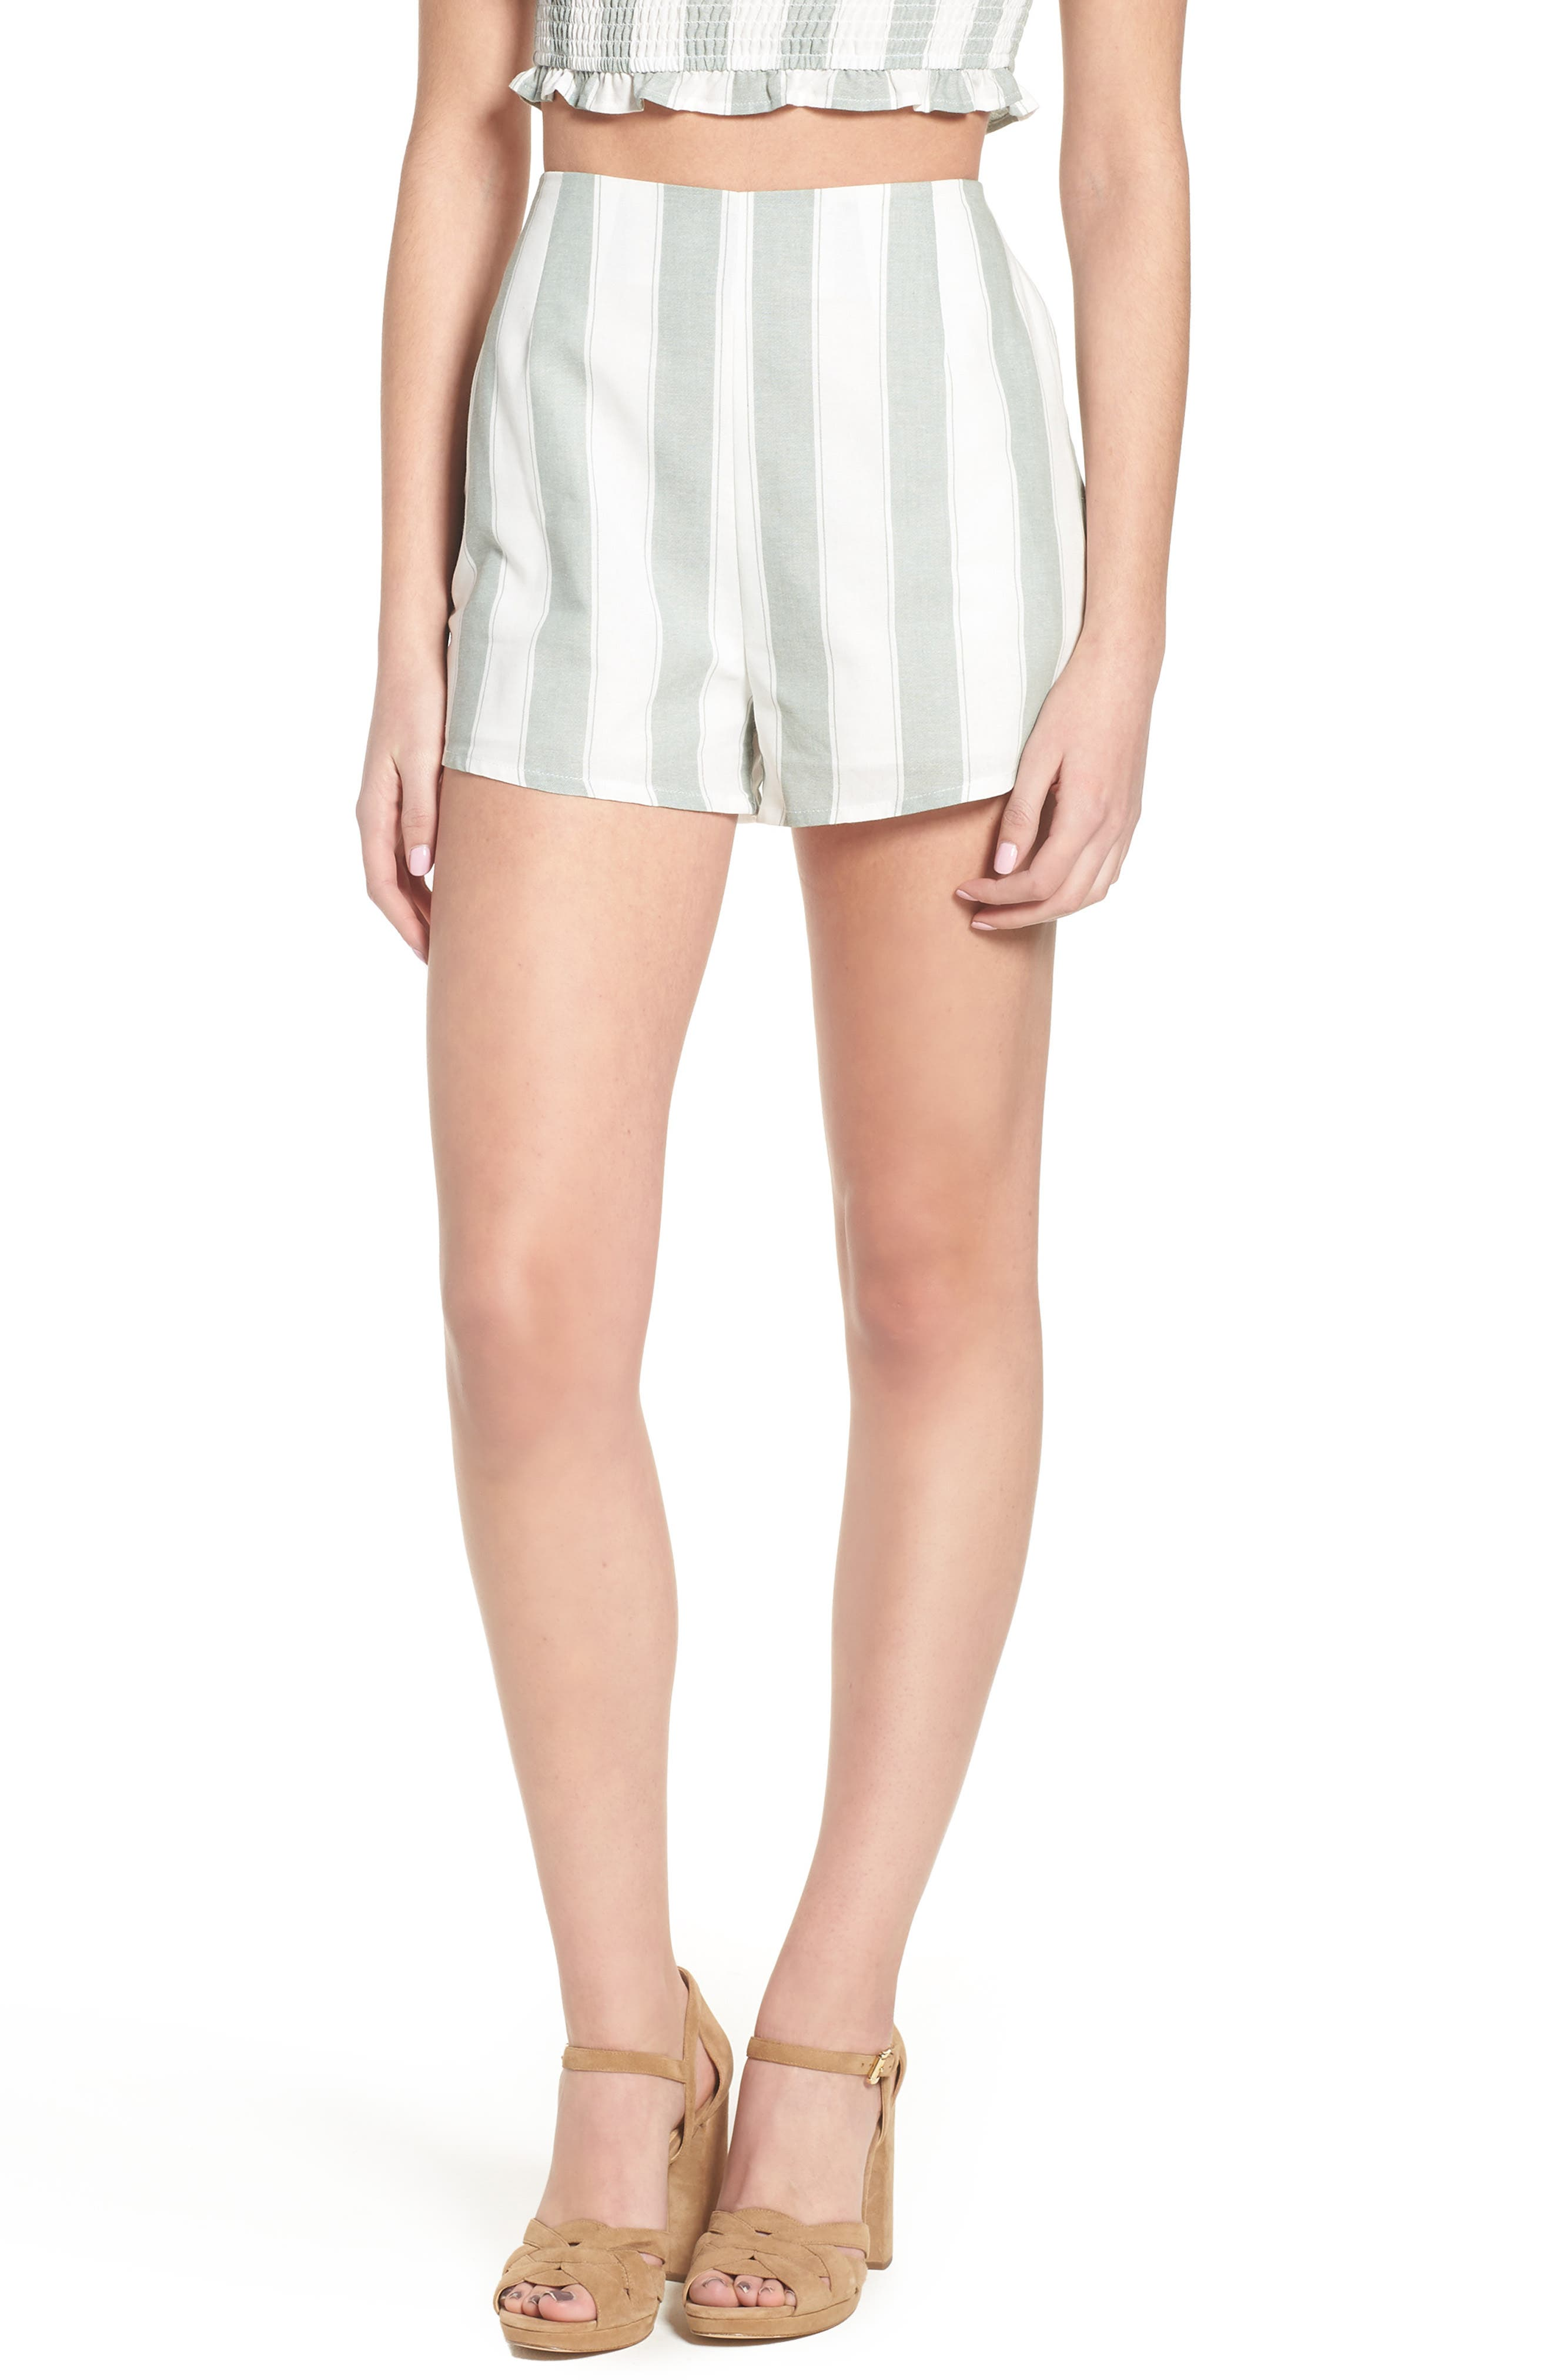 Poetic Stripe Shorts,                         Main,                         color, Sage W White